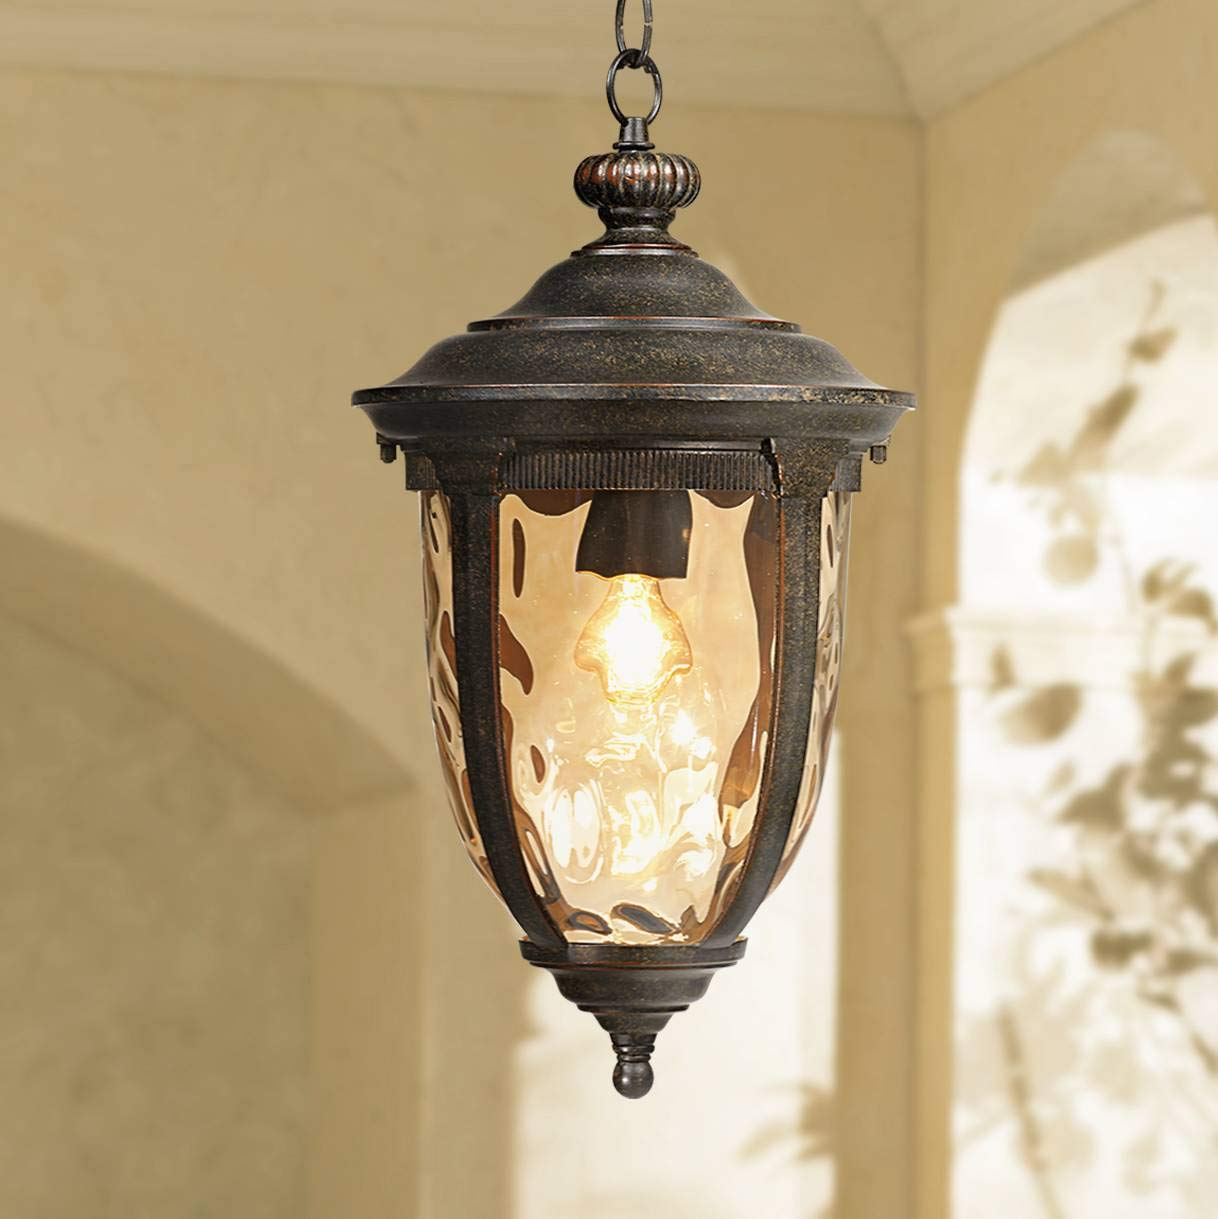 Bellagio Rustic Outdoor Ceiling Light Bronze 18'' Hammered Glass for Exterior Entryway Porch - John Timberland